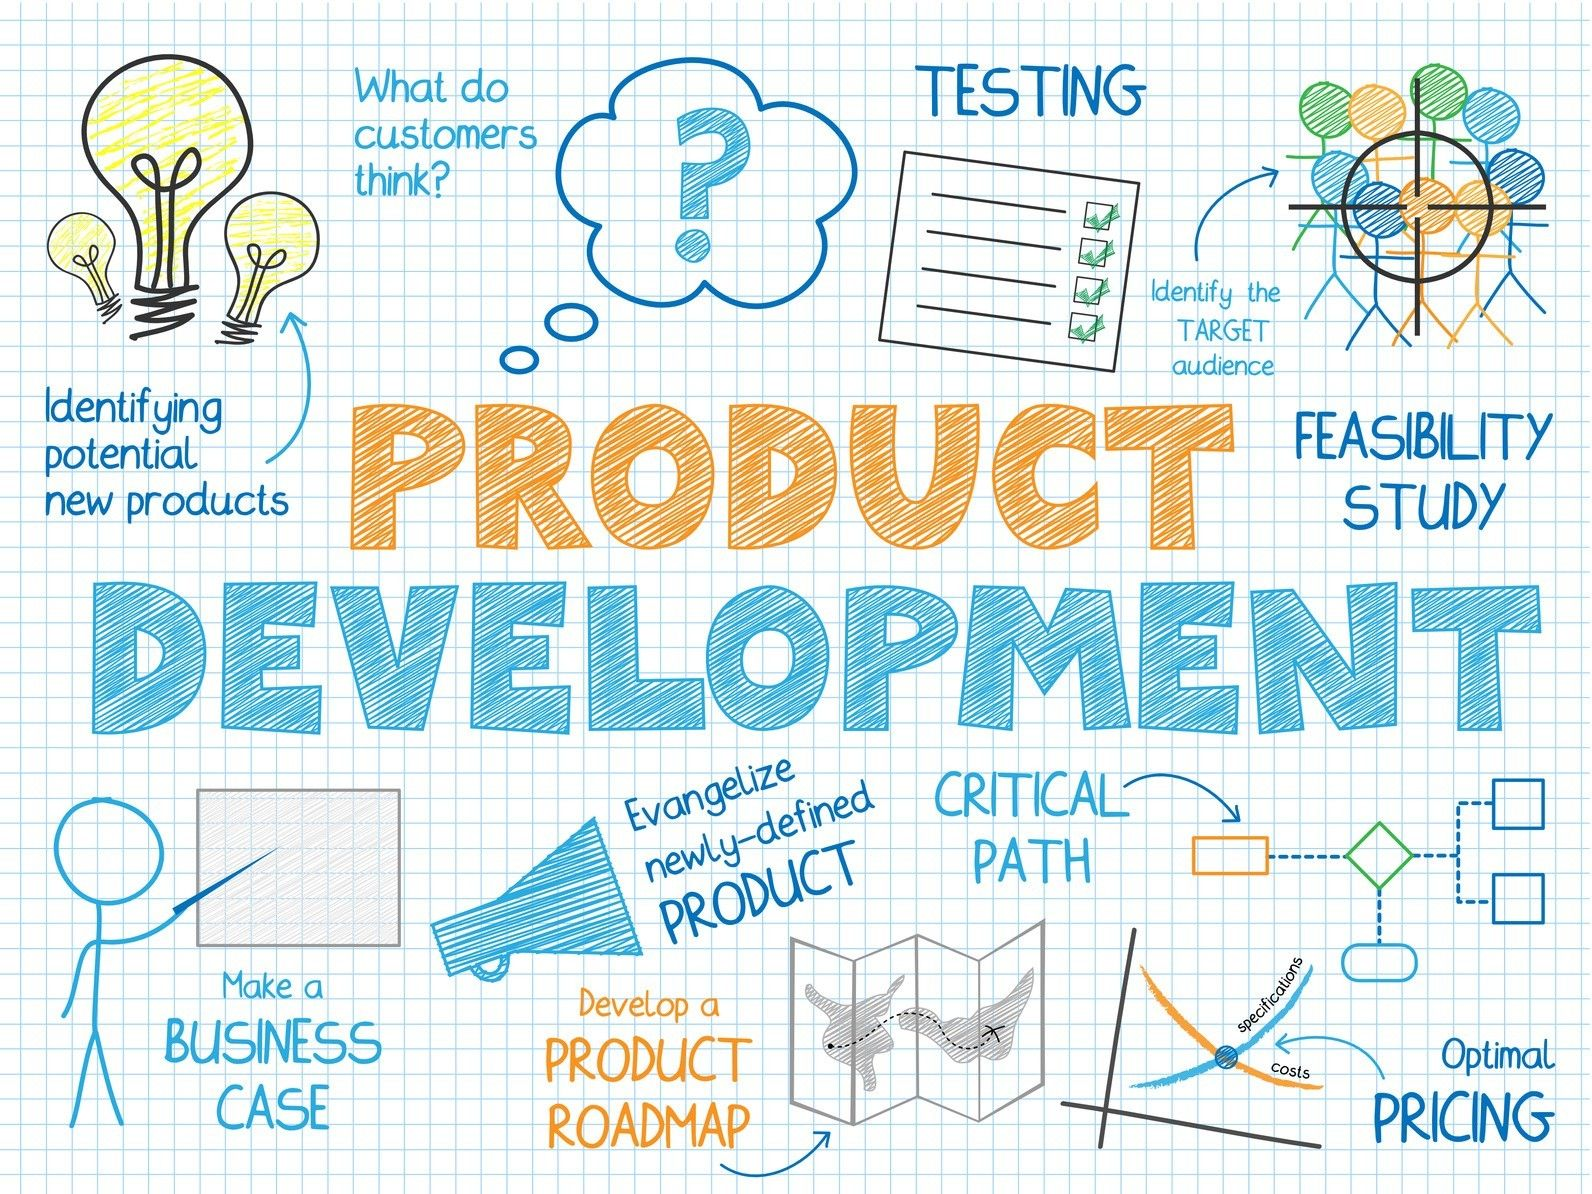 Patent Or Prototype Which Should Come First New Product Development Product Development Process Make Business